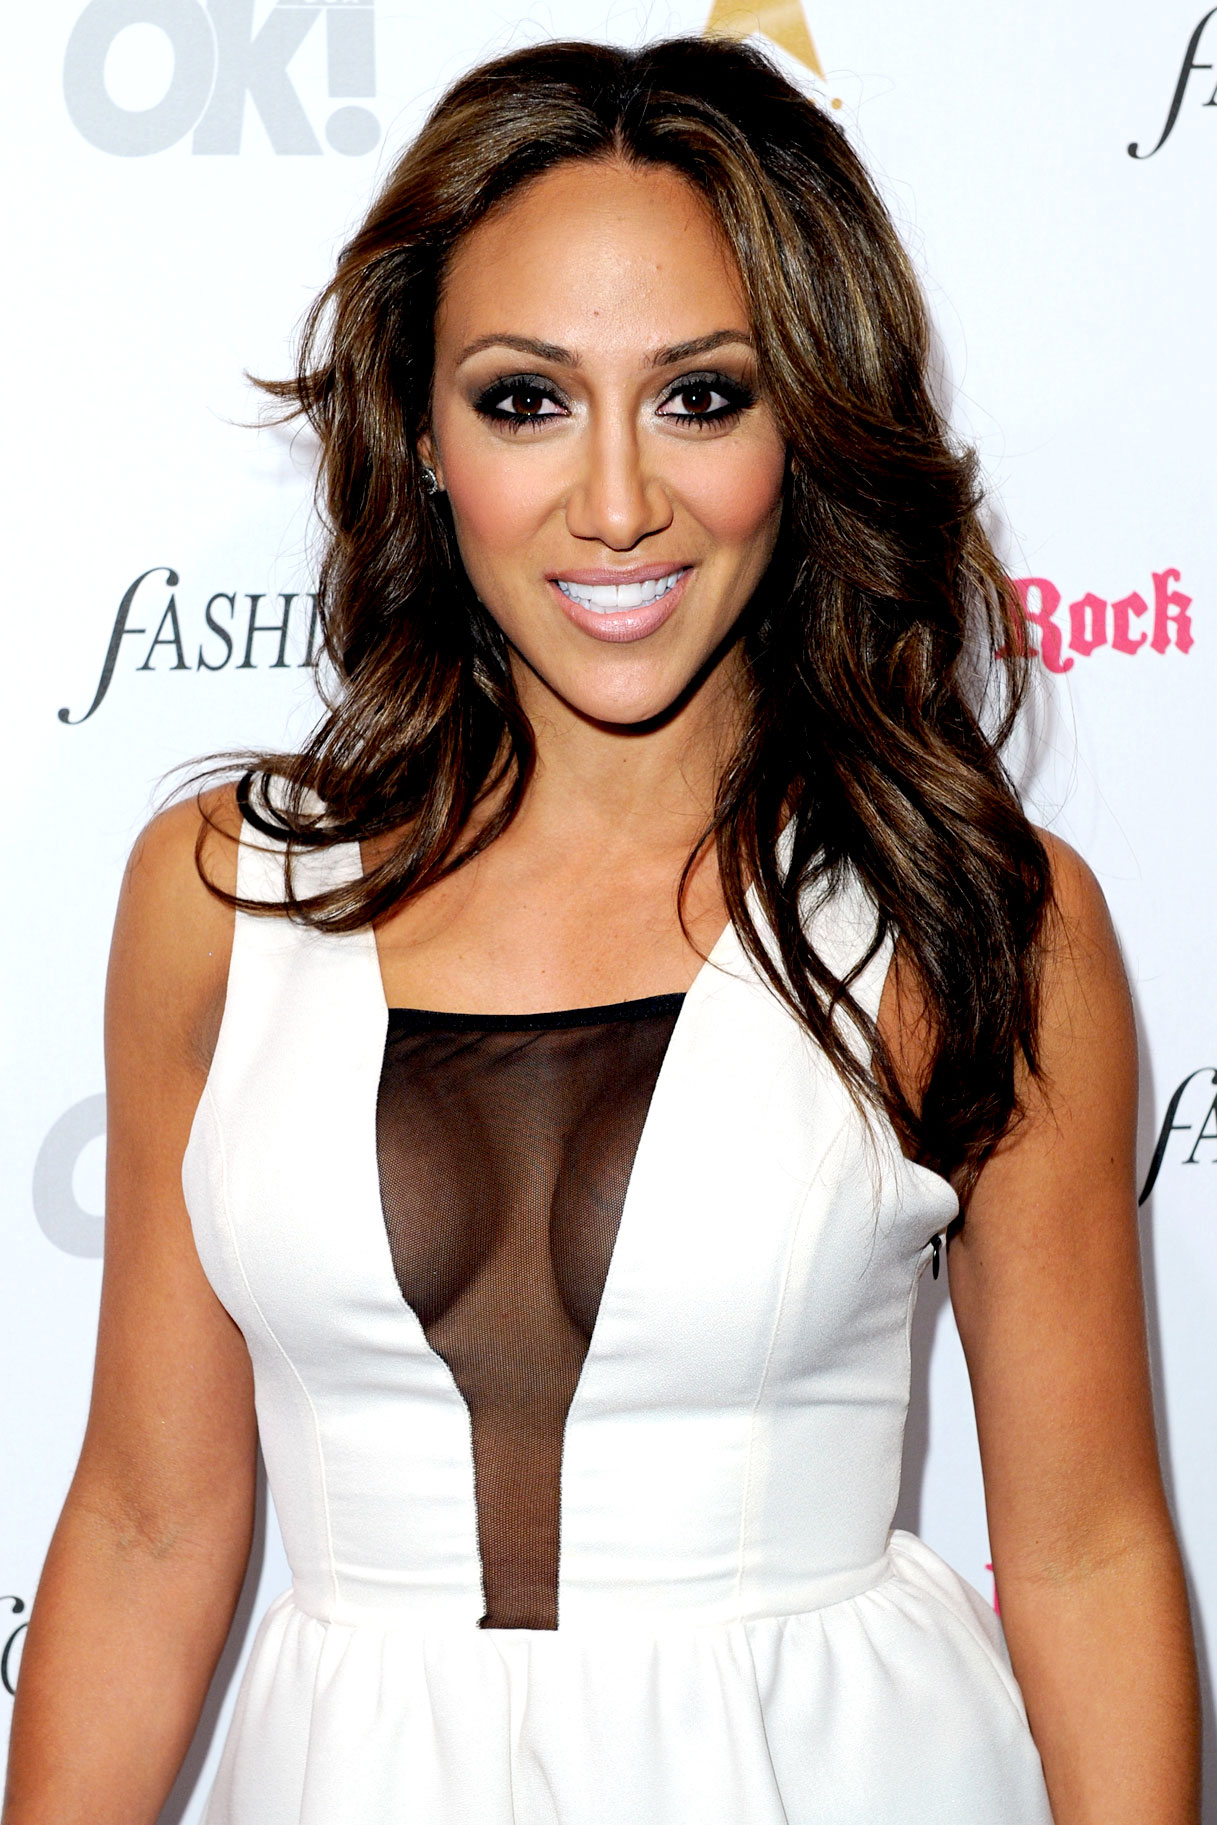 out-and-about-gallery-171-11-melissa-gorga